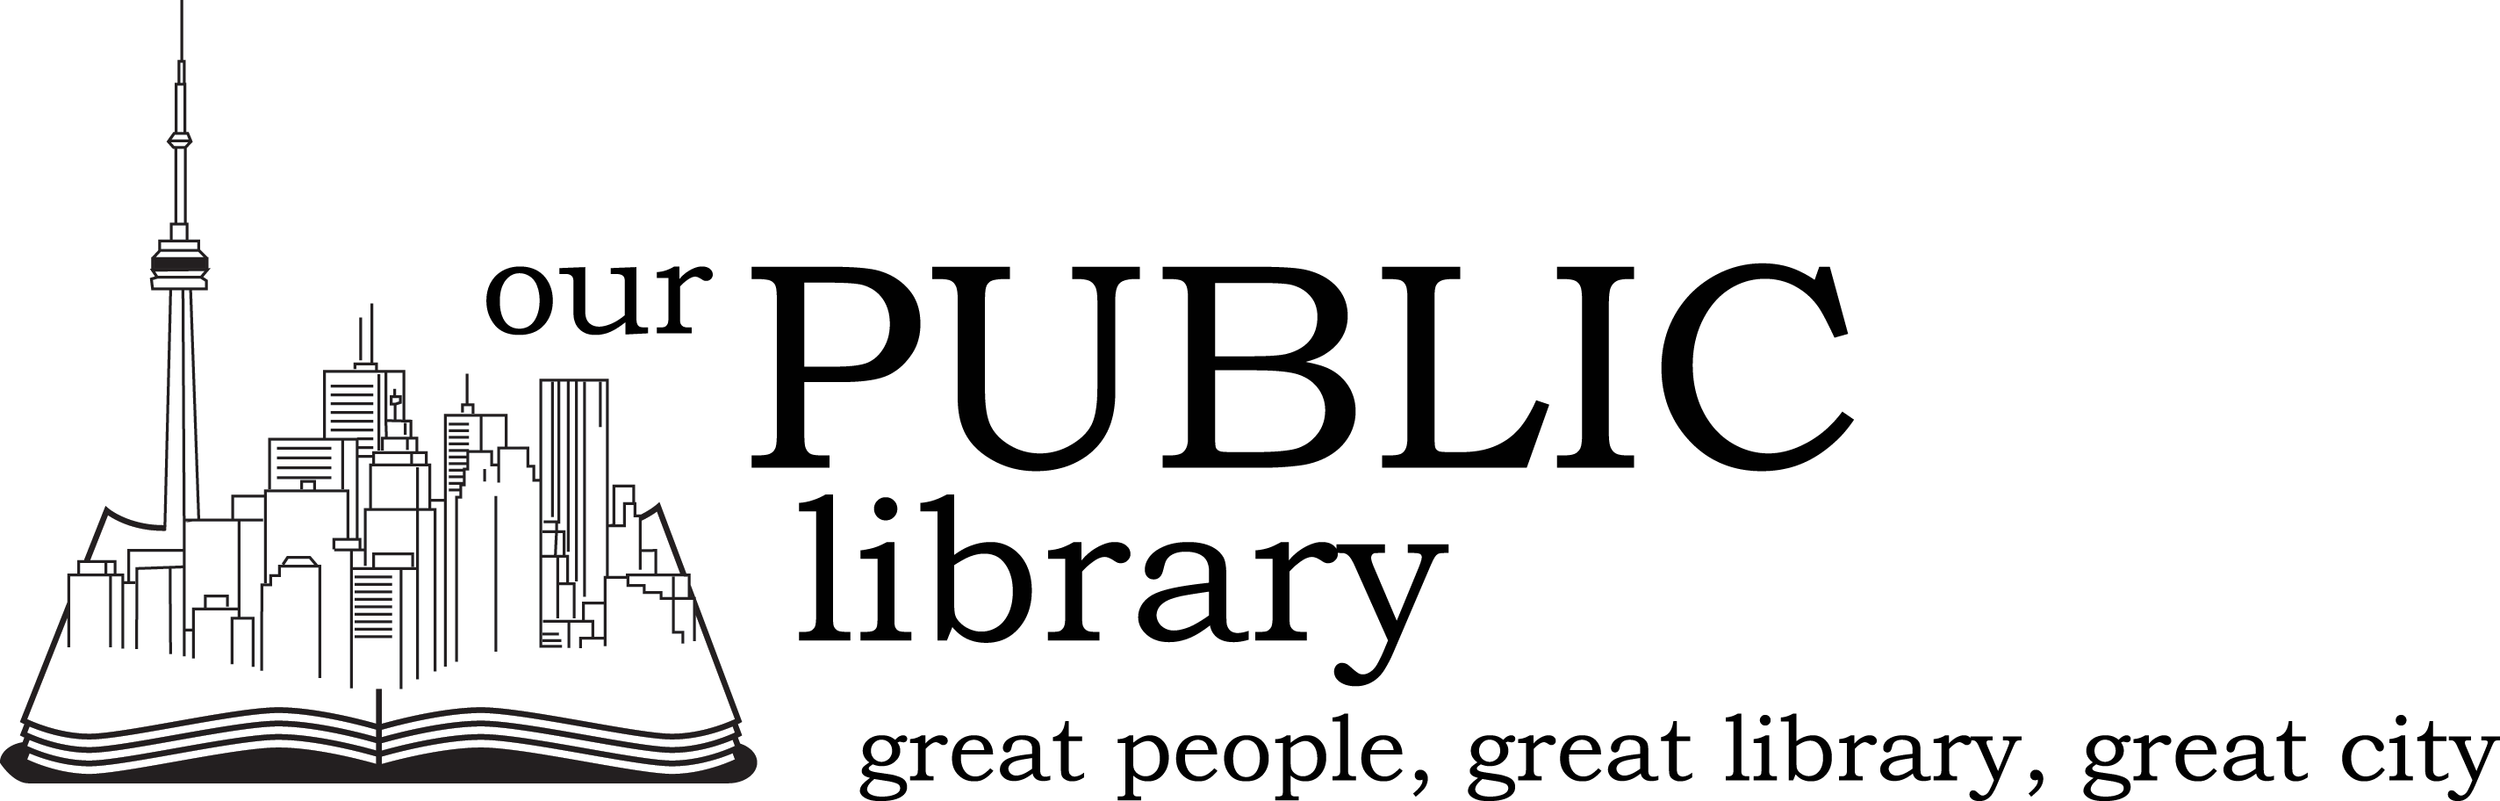 Our Public Library